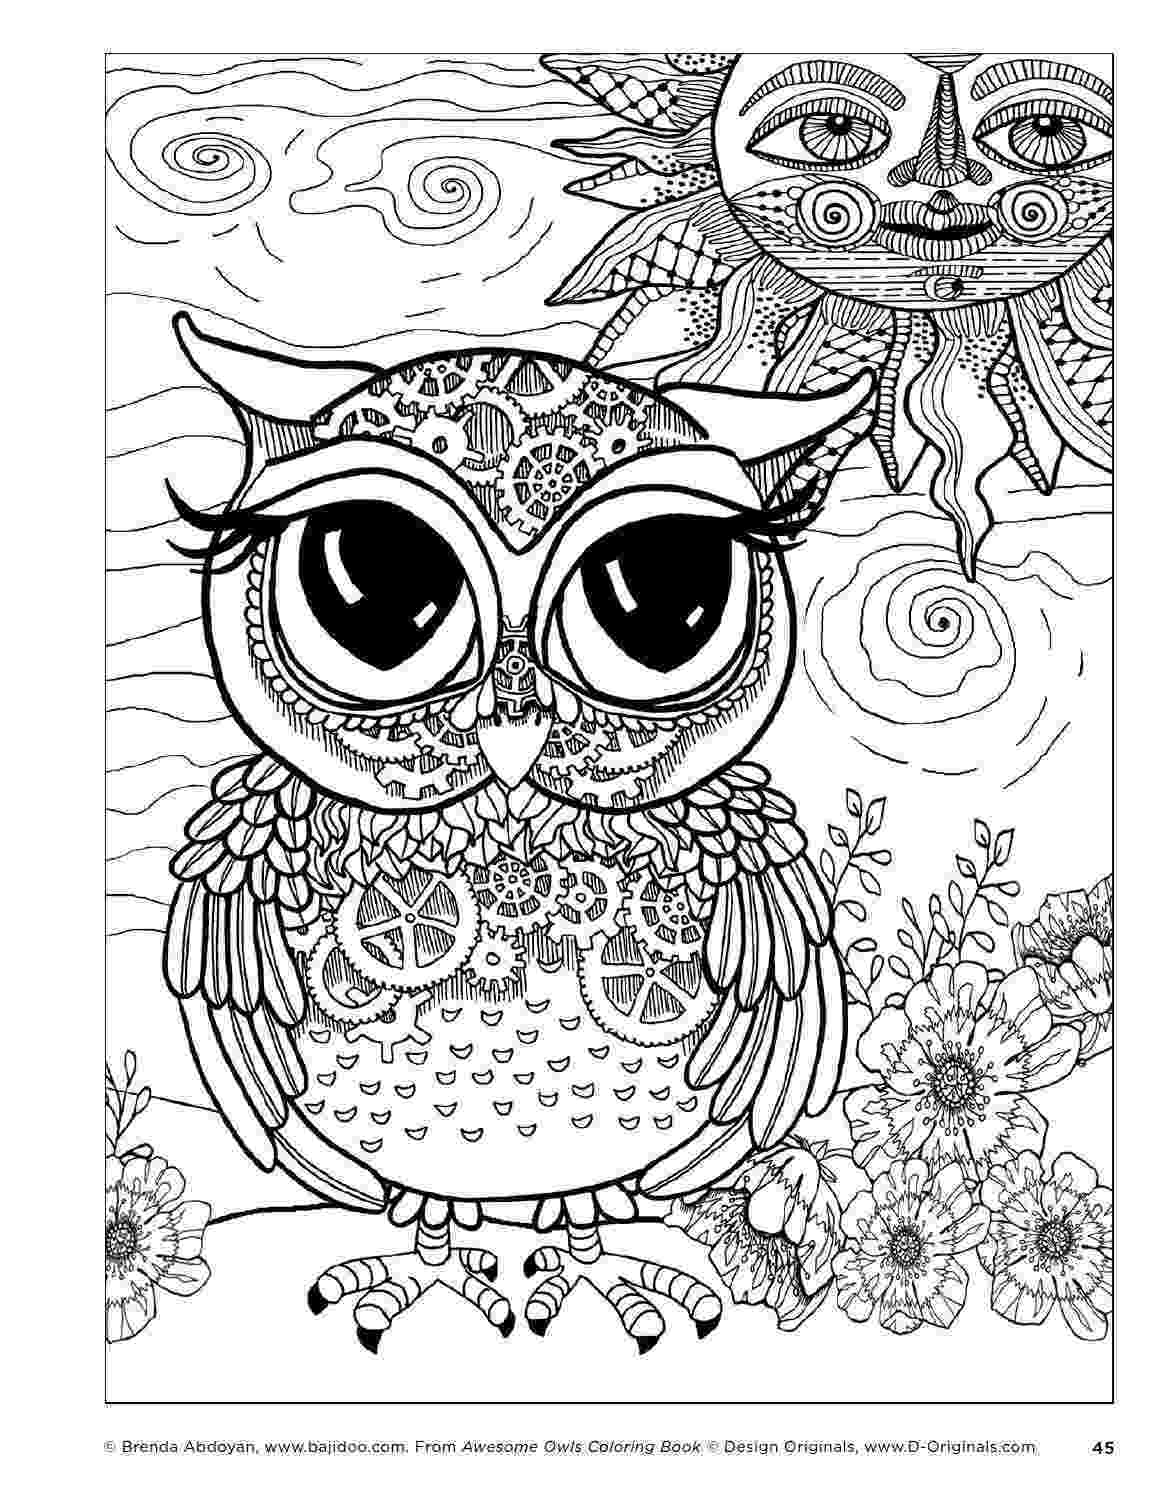 coloring pages for adults with owls awesome owls coloring book by fox chapel publishing adults coloring owls with pages for